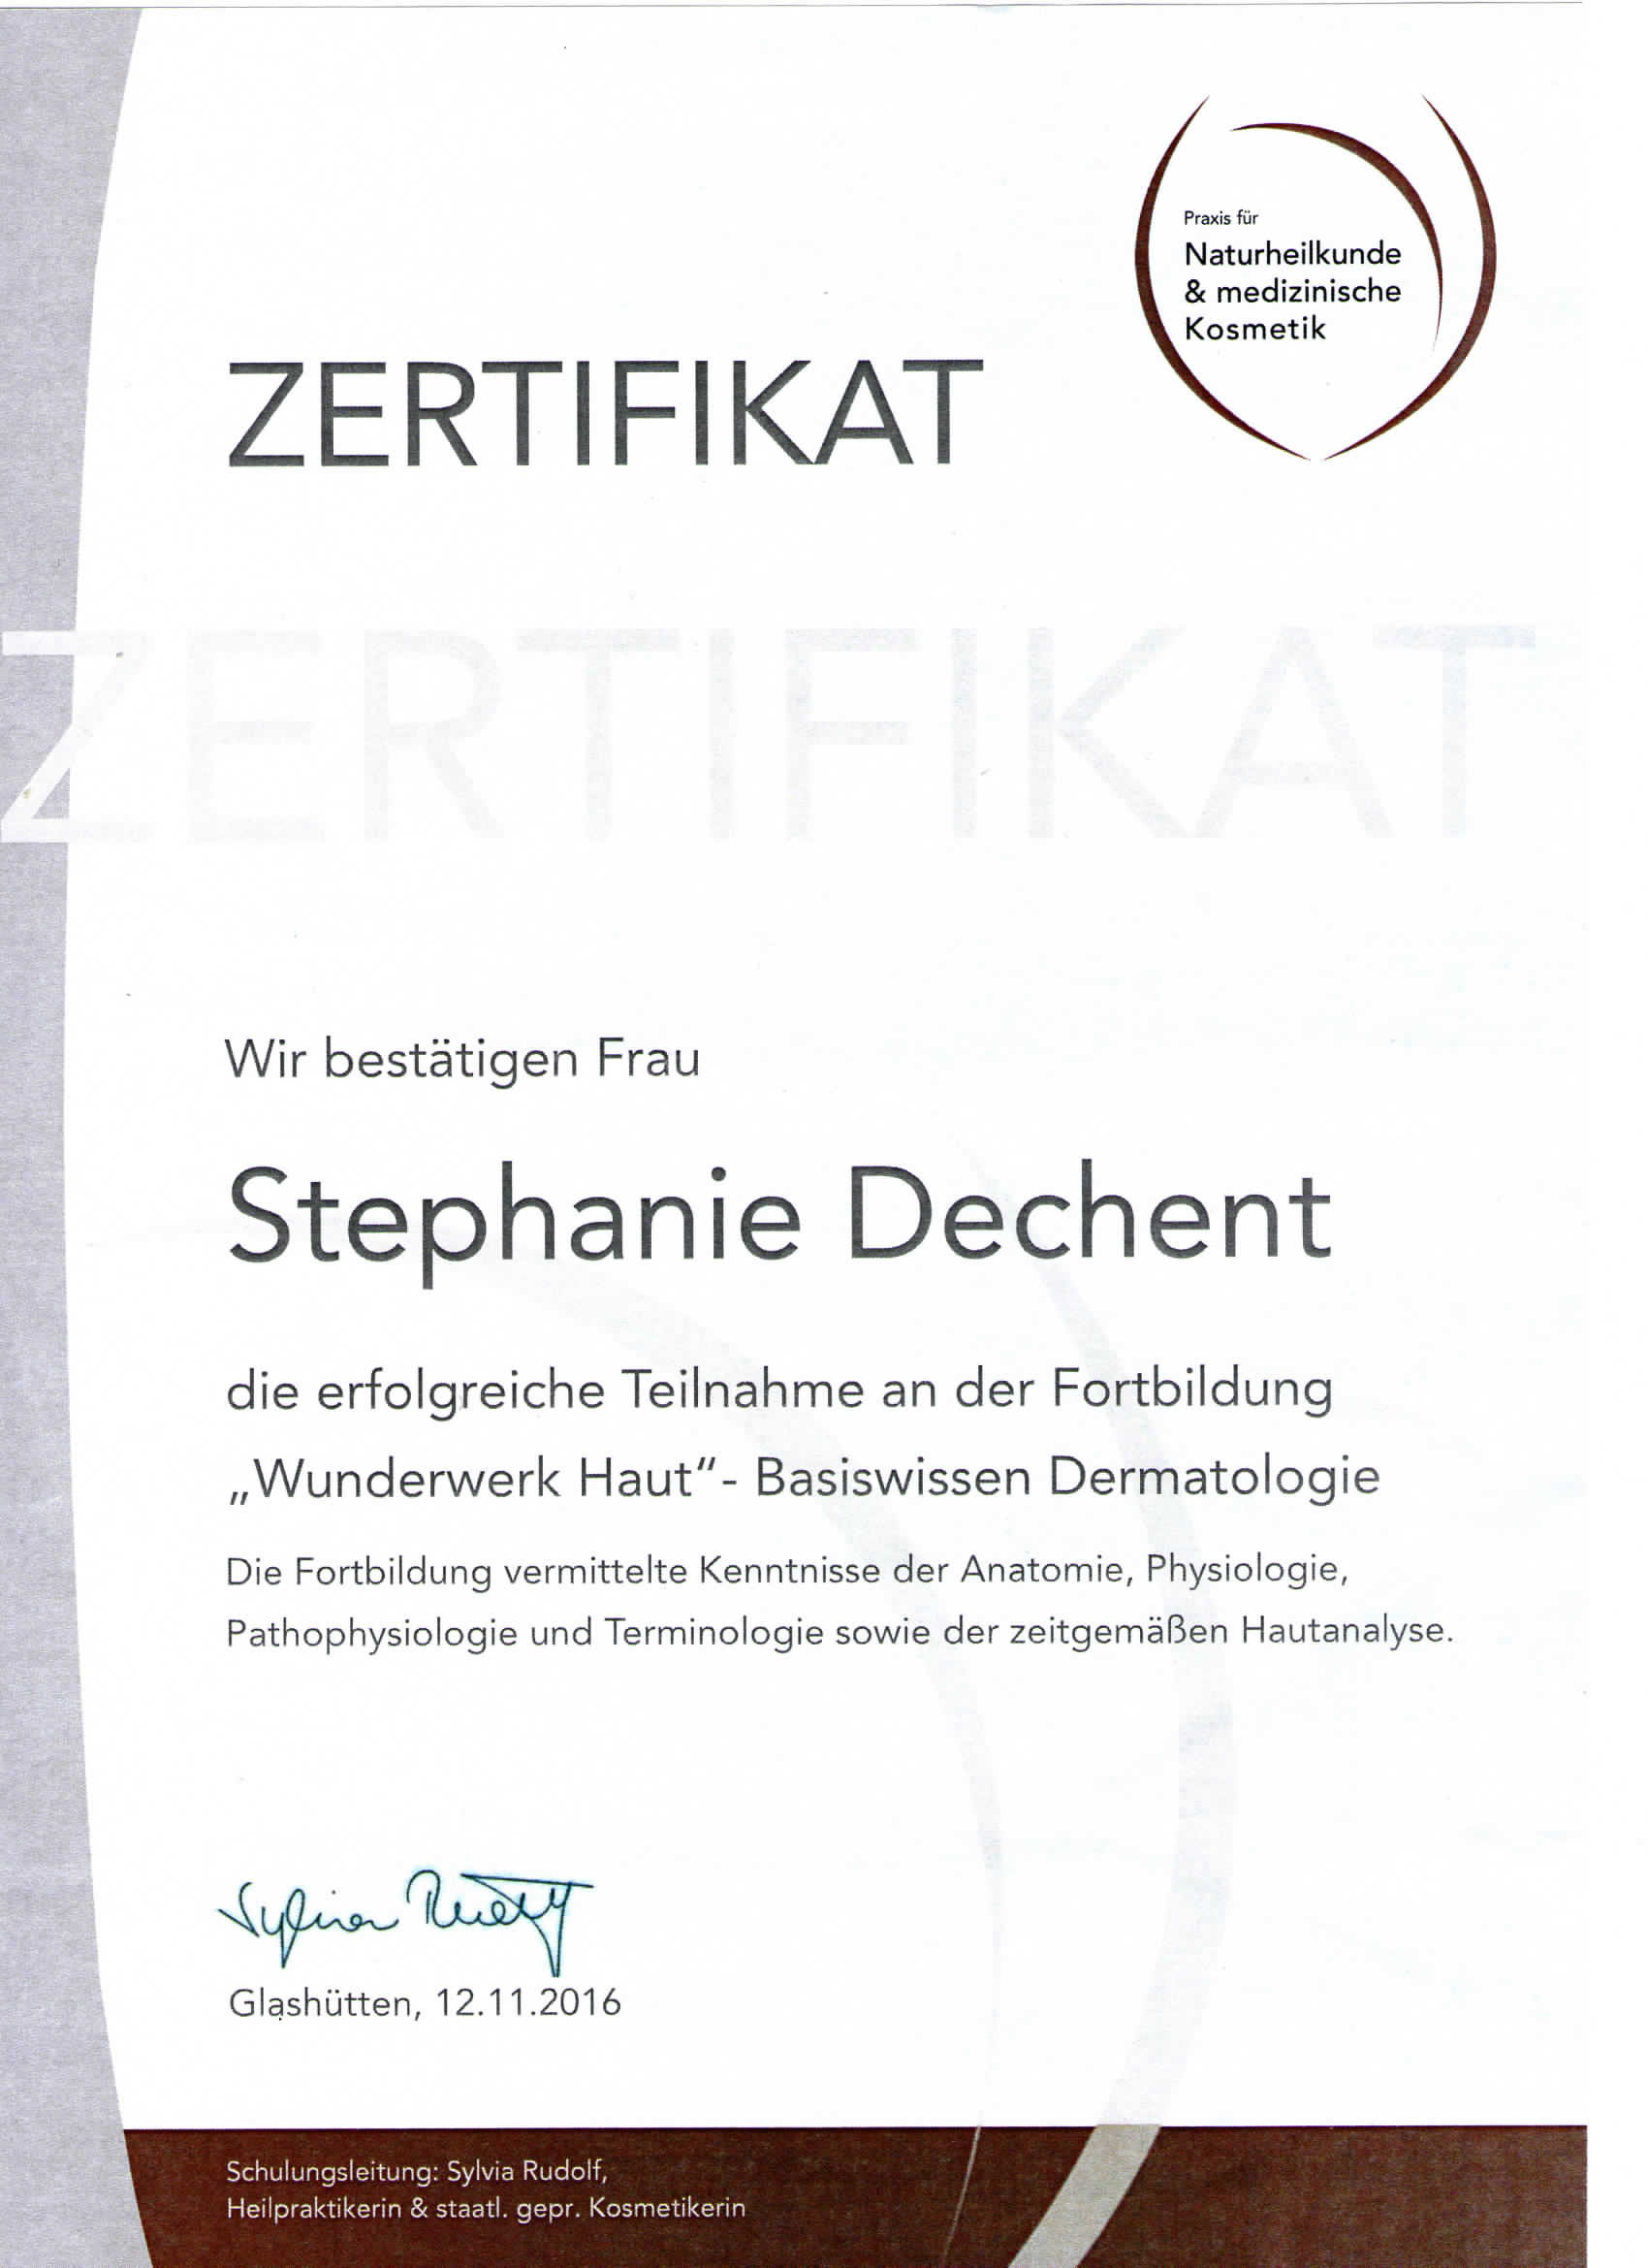 Zertifikate - Finest Beauty Selection das Anti-Aging Fachinstitut in ...